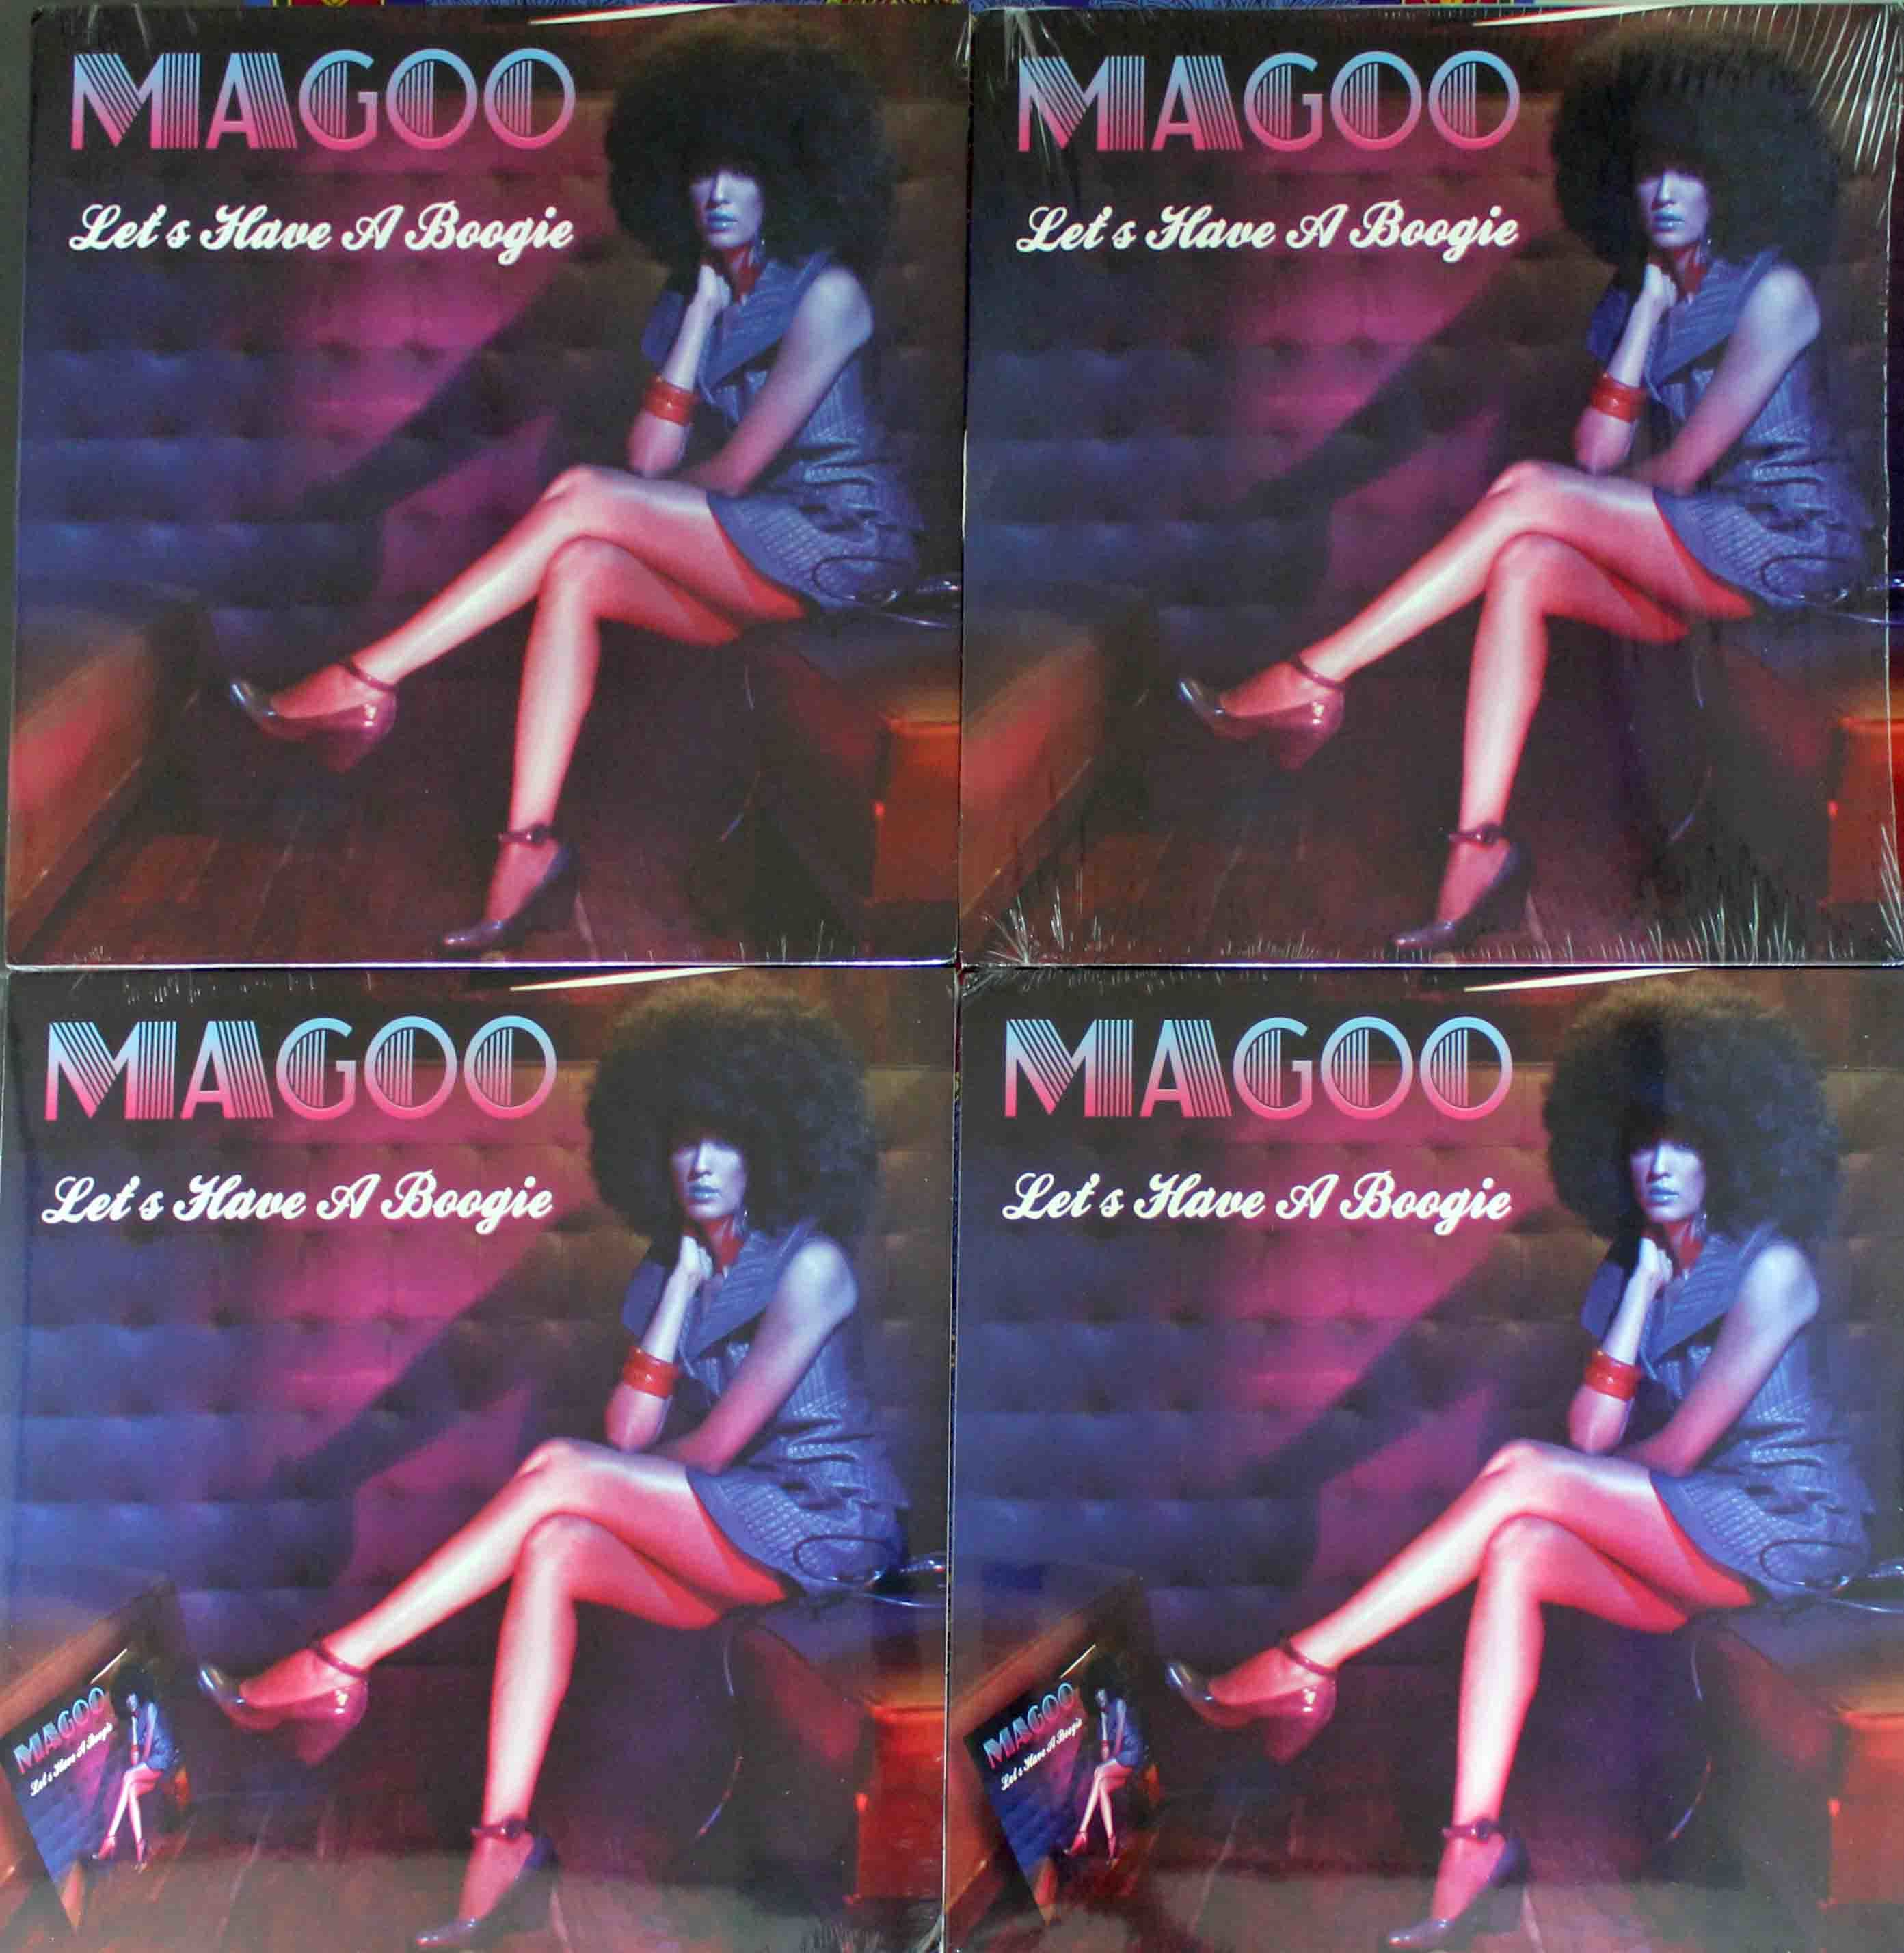 Magoo Lets Have A Boogie 0